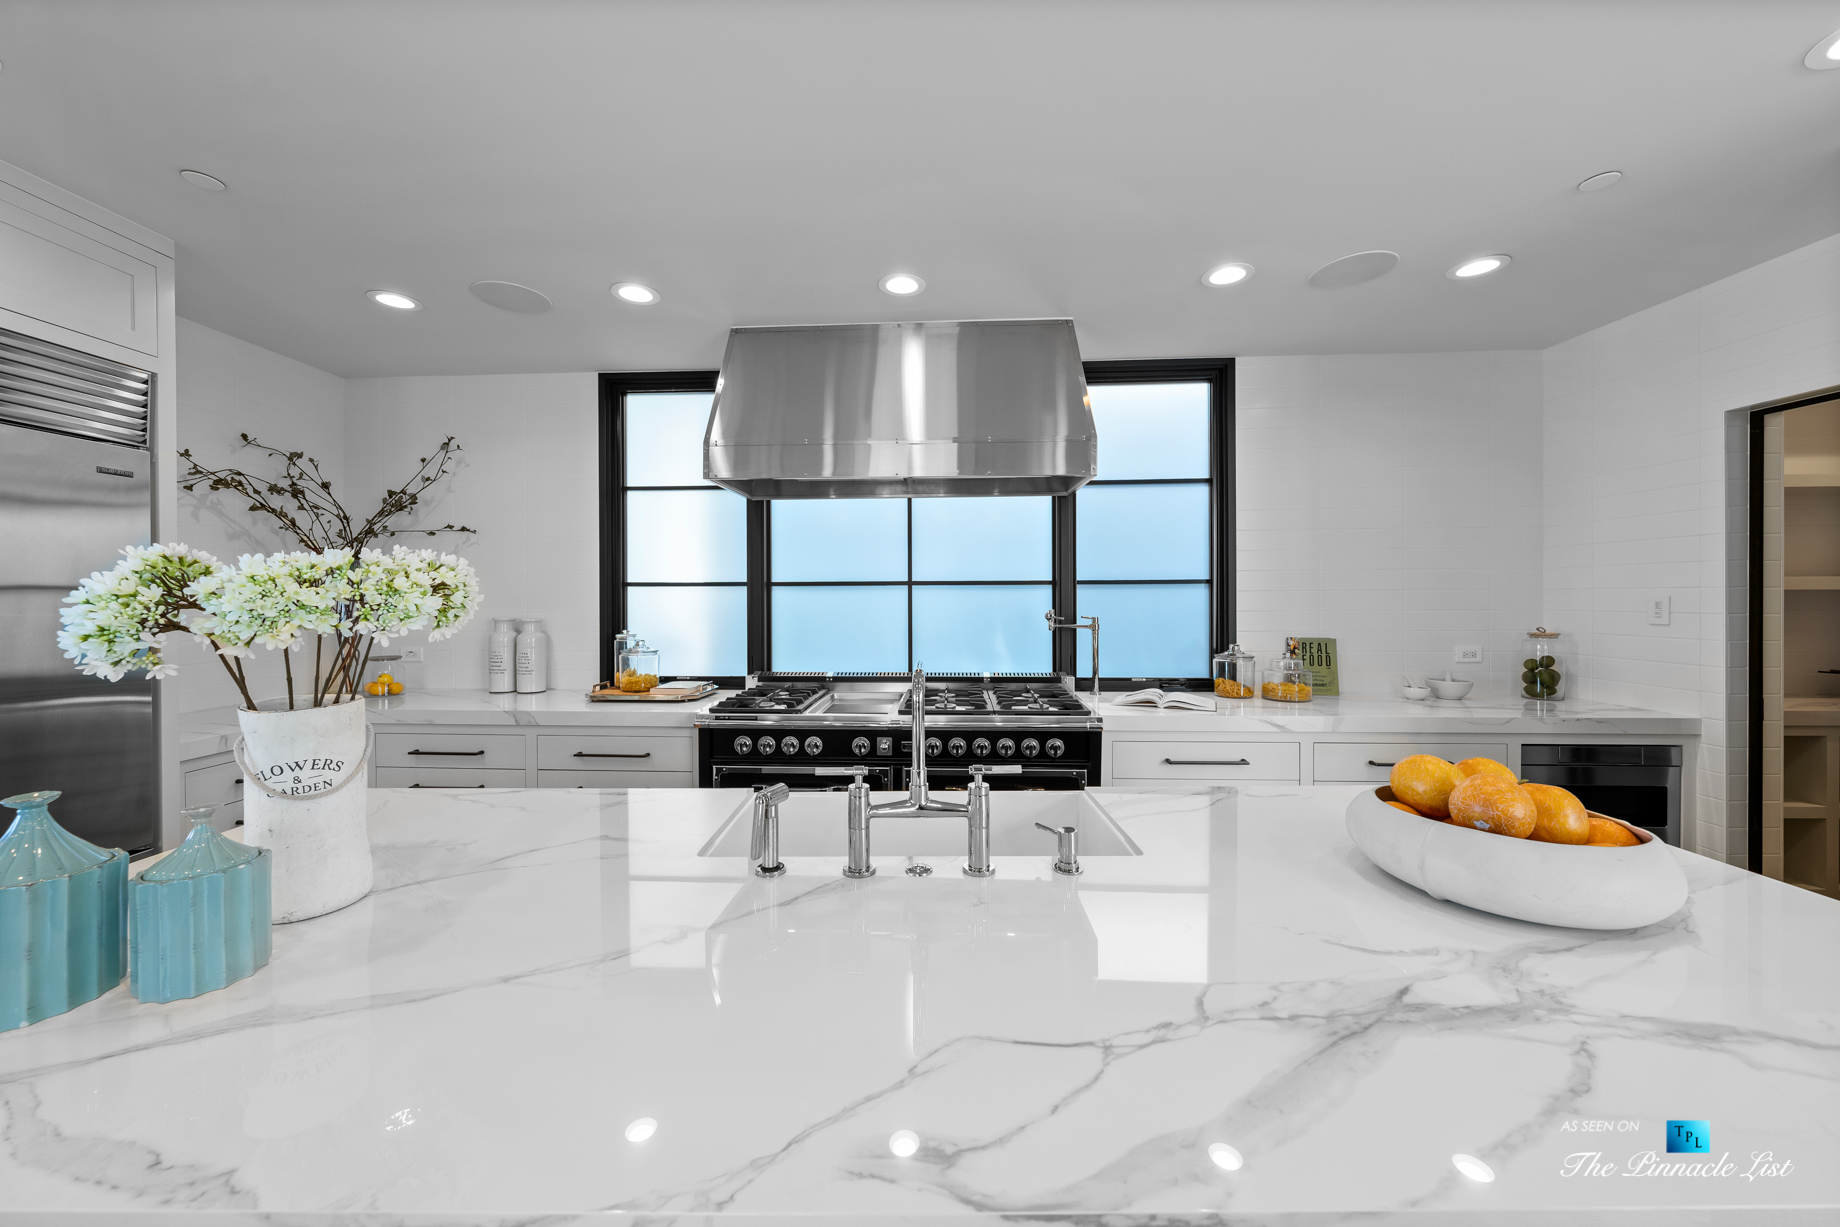 508 The Strand, Manhattan Beach, CA, USA – Kitchen Island Countertop – Luxury Real Estate – Oceanfront Home